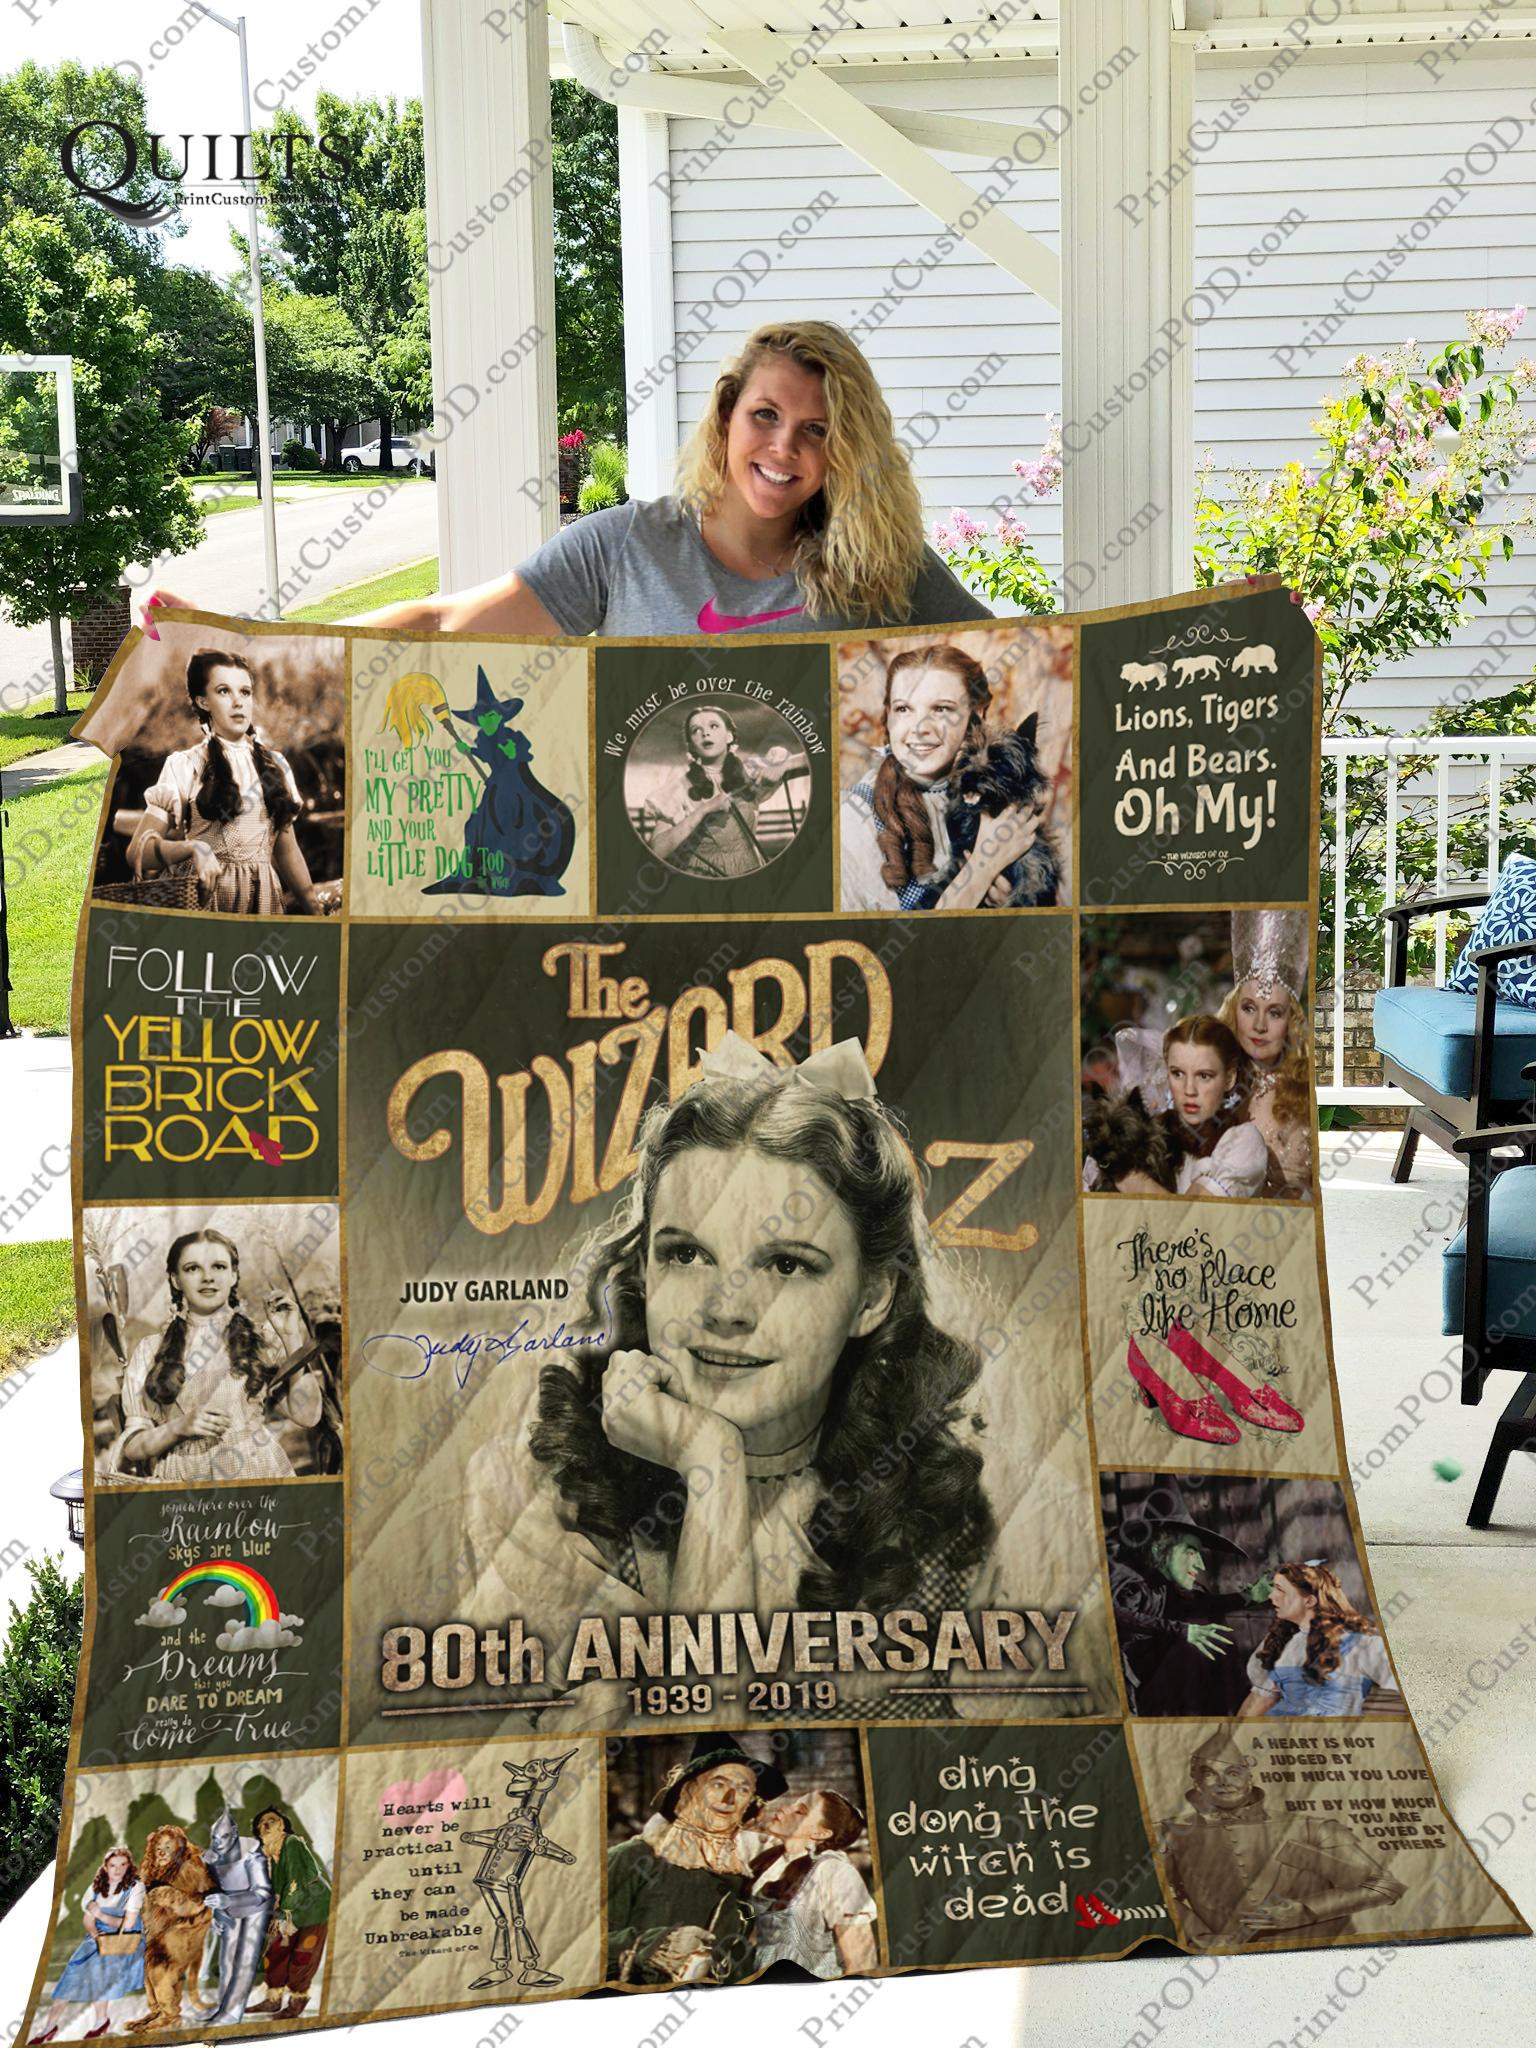 The wizard of oz judy garland 80th anniversary quilt - king